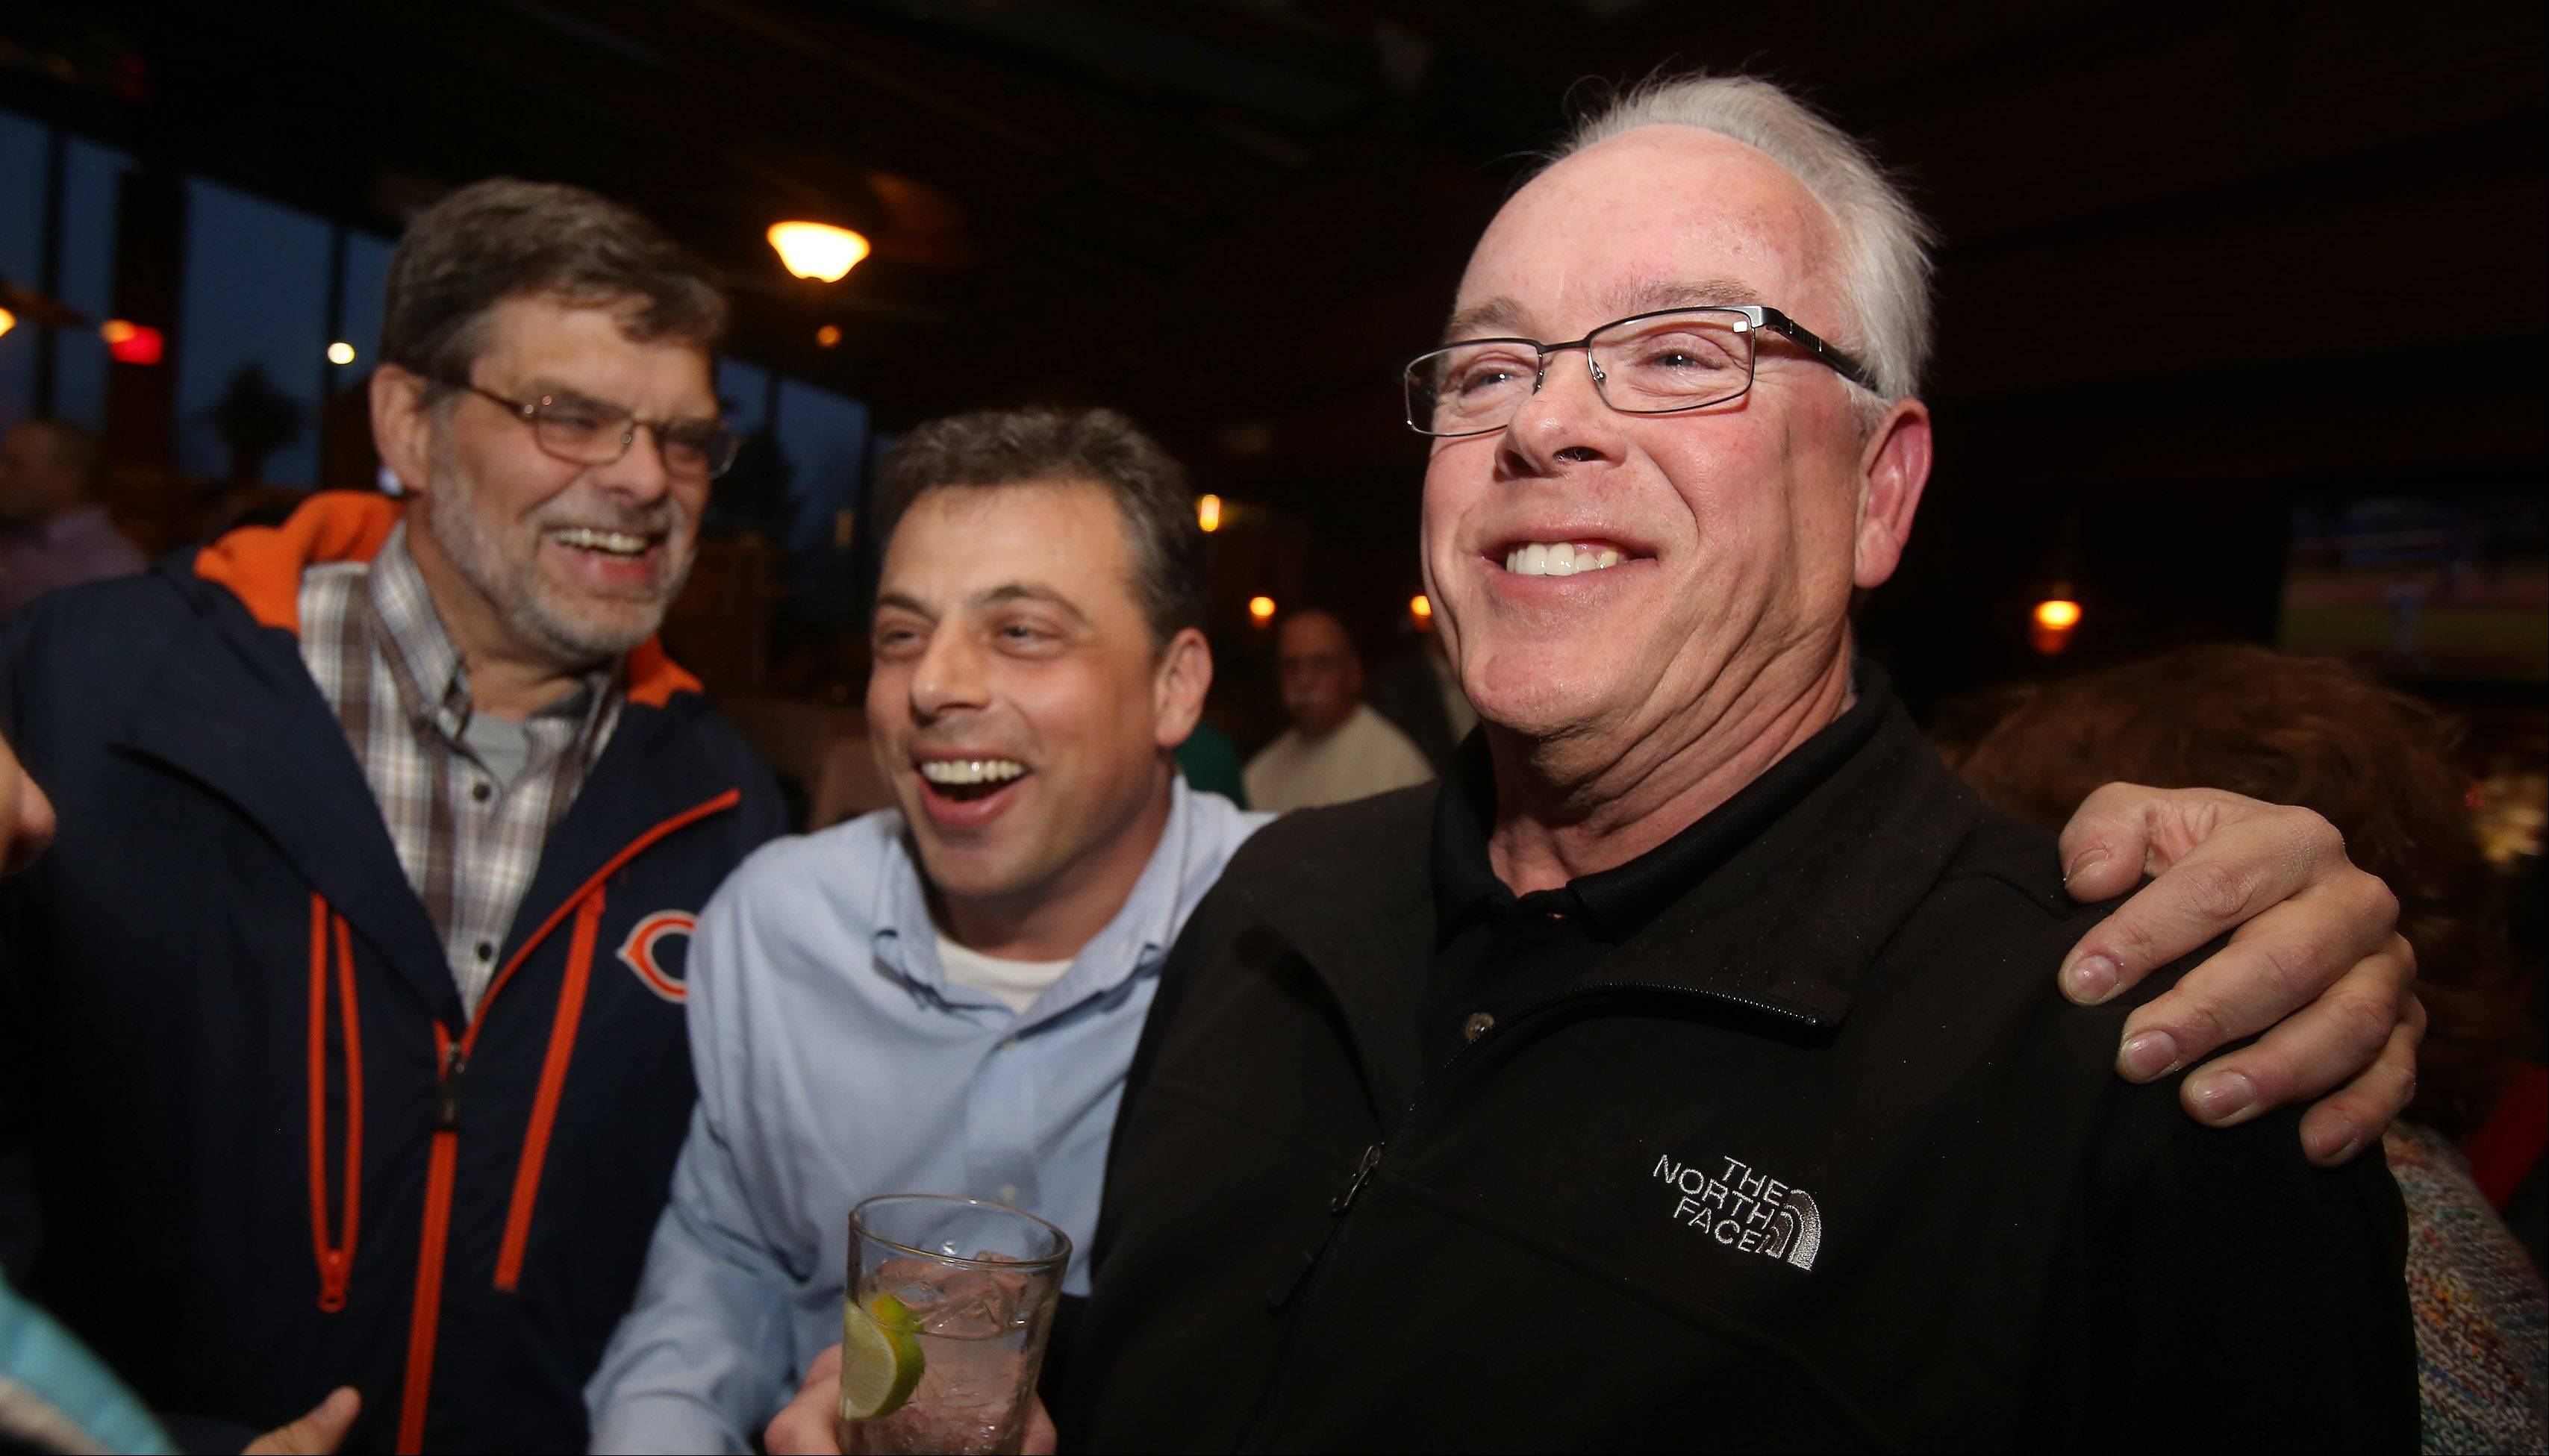 Lake Zurich village president candidate Tom Poynton, right, is congratulated by trustee candidate Jeff Halen as they watch election results come in during his election party Tuesday at Beelow�s Steakhouse. Poynton and Halen both won.